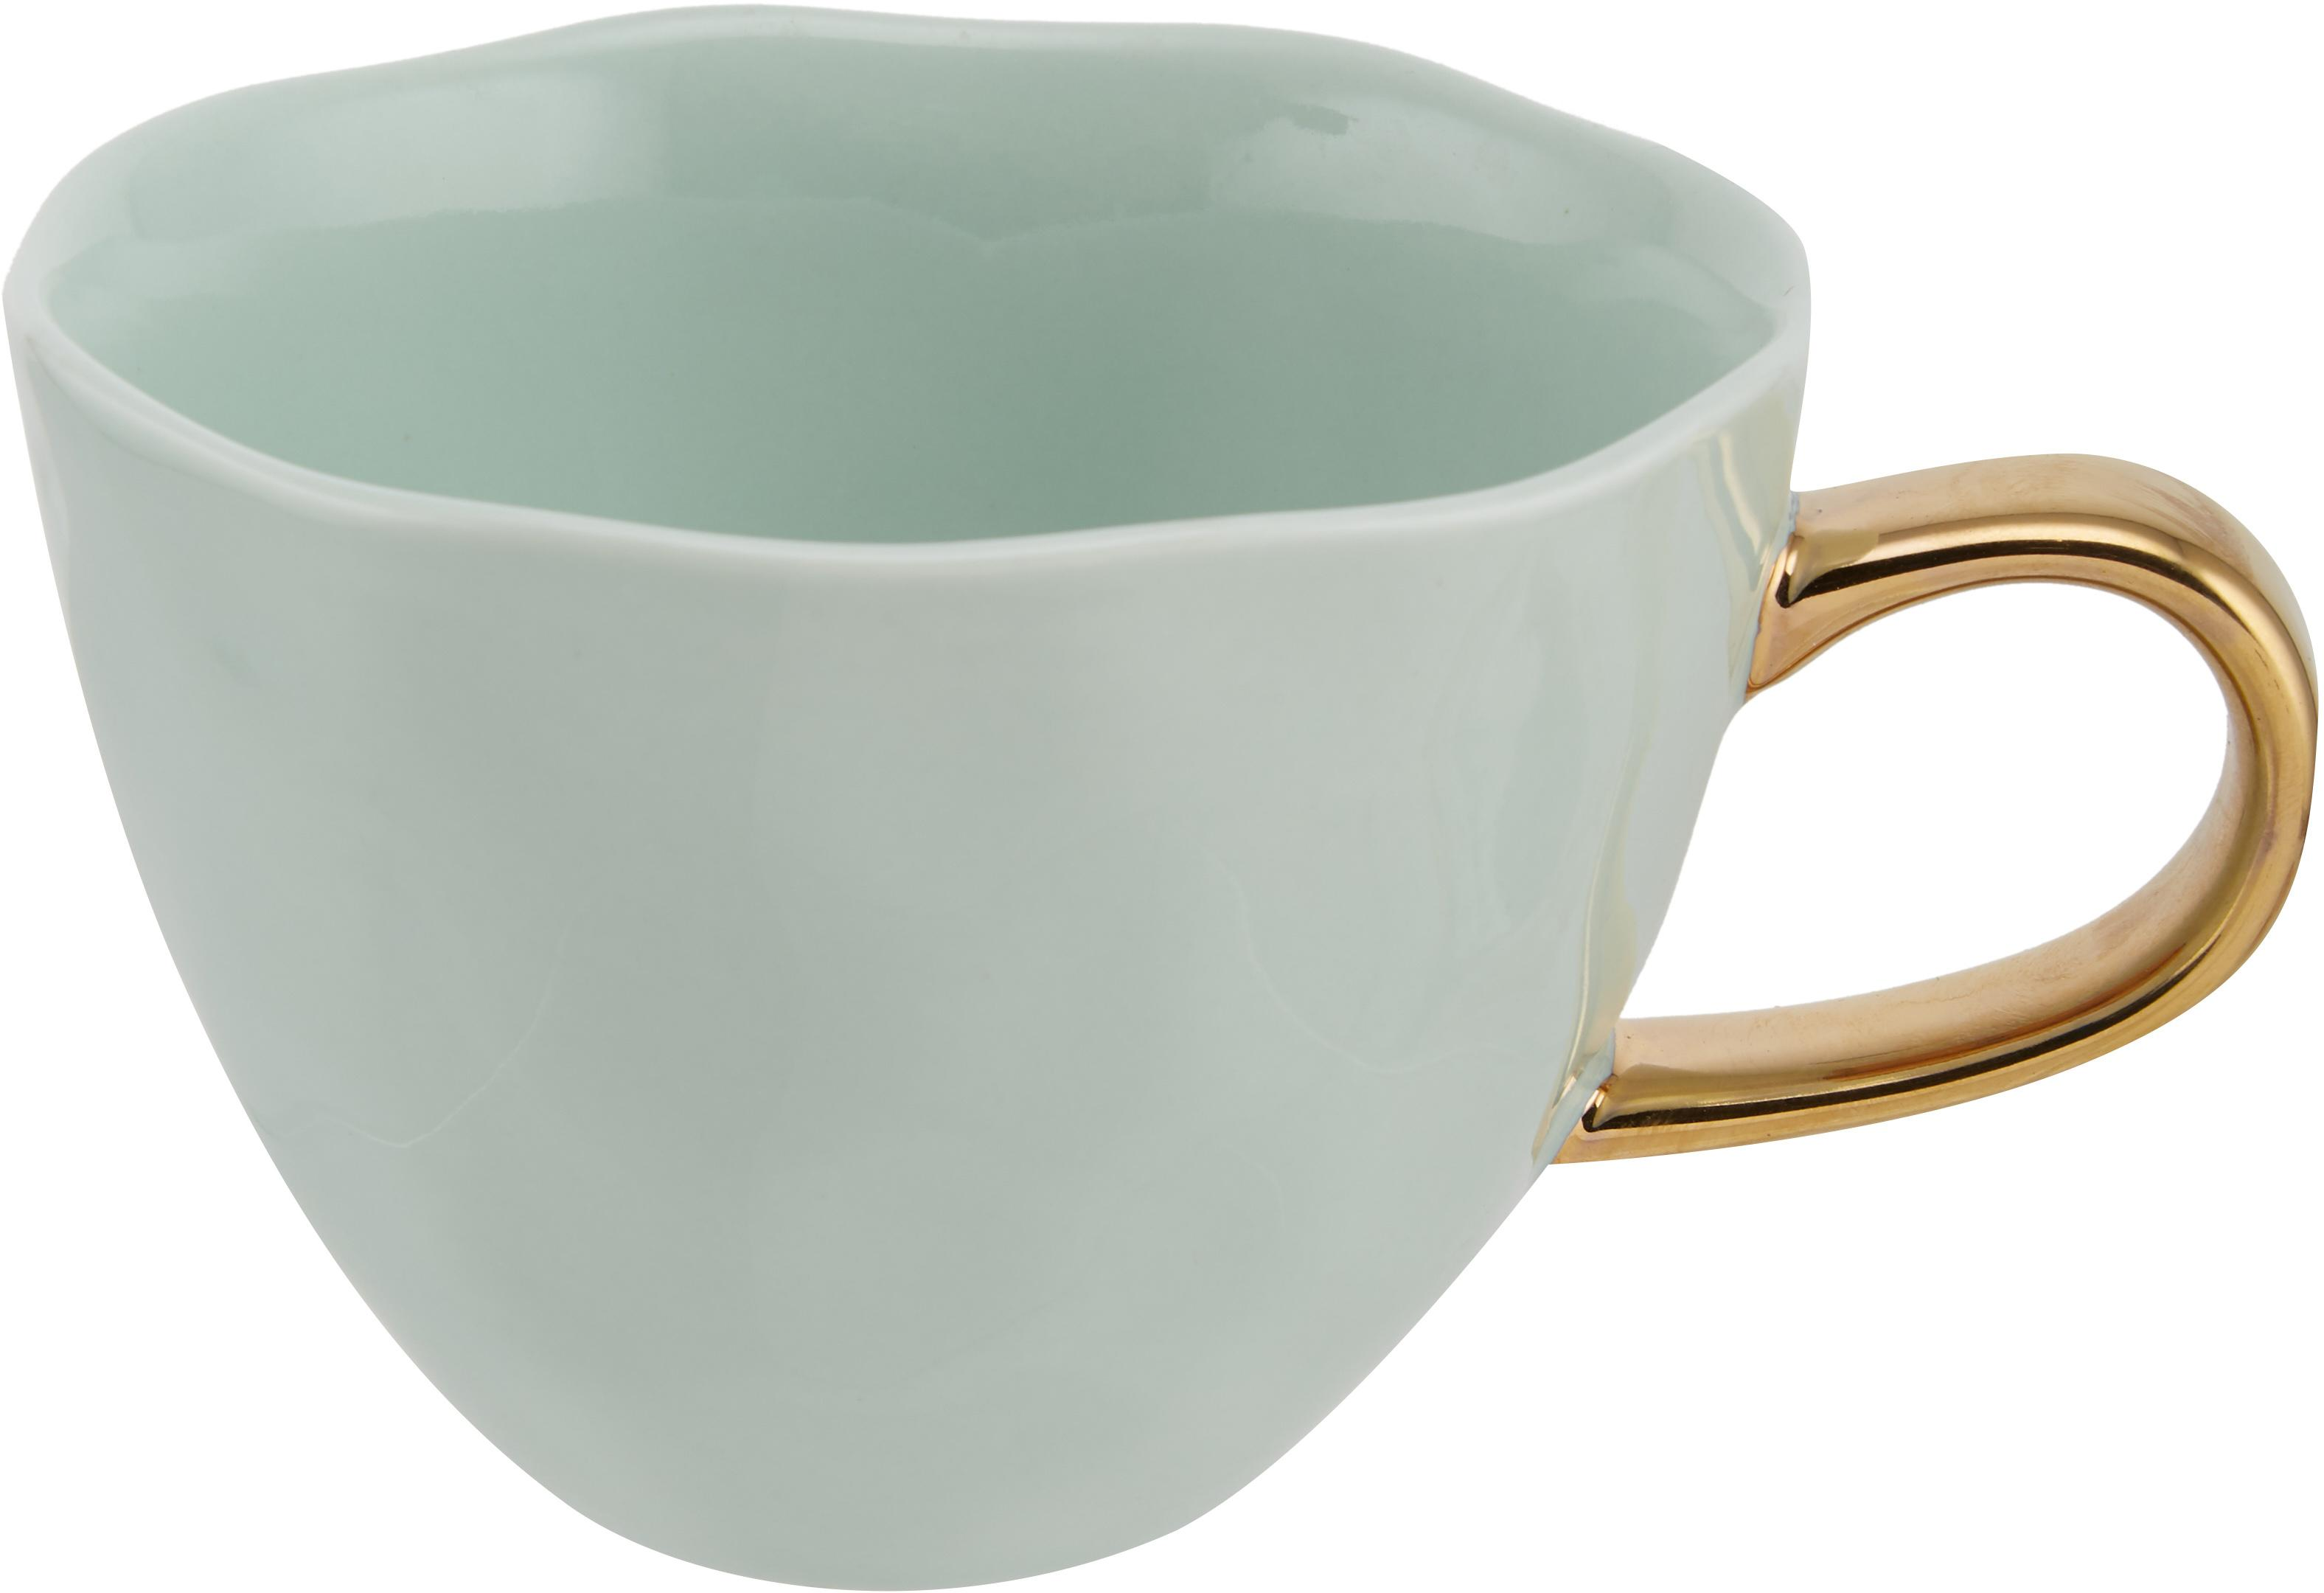 Tasse Good Morning in Mint mit goldenem Griff, Steingut, Mintgrün, Goldfarben, Ø 11 x H 8 cm